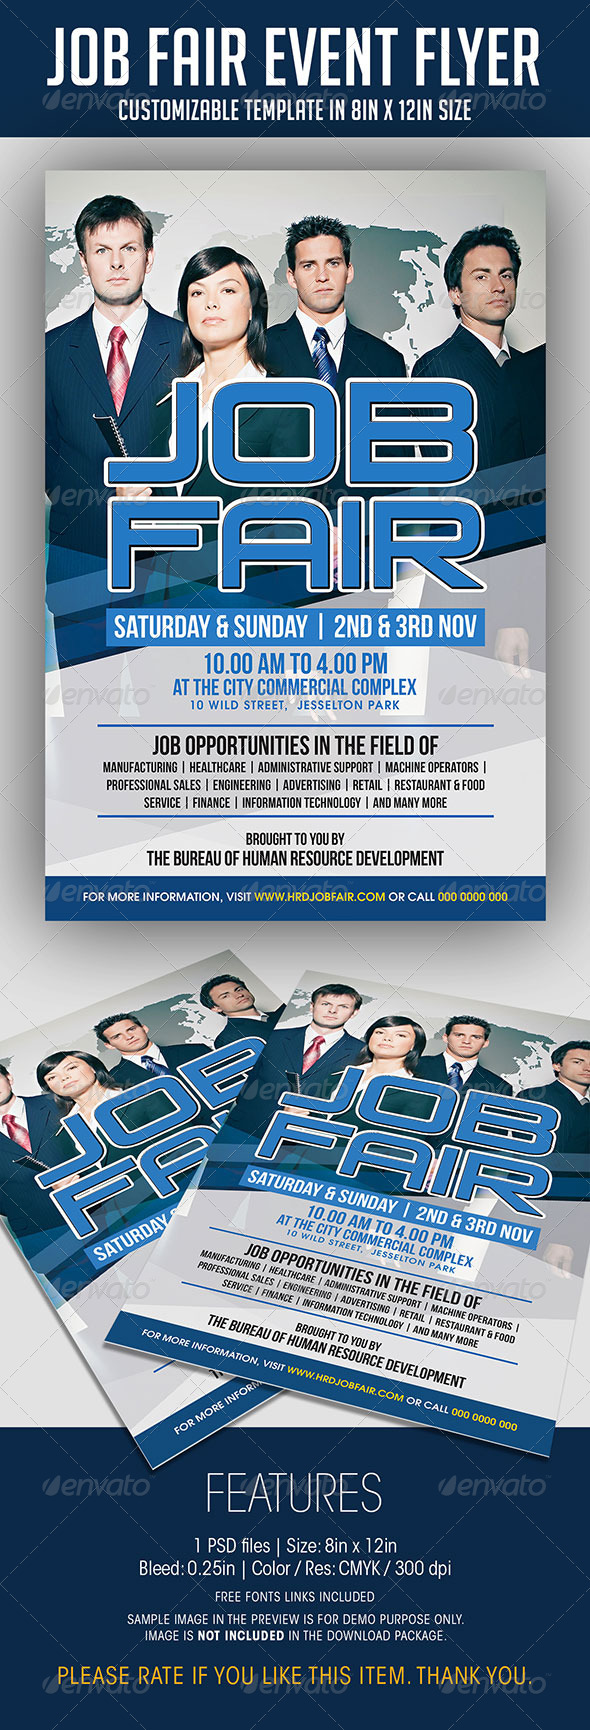 Job Fair Event Flyer - Events Flyers